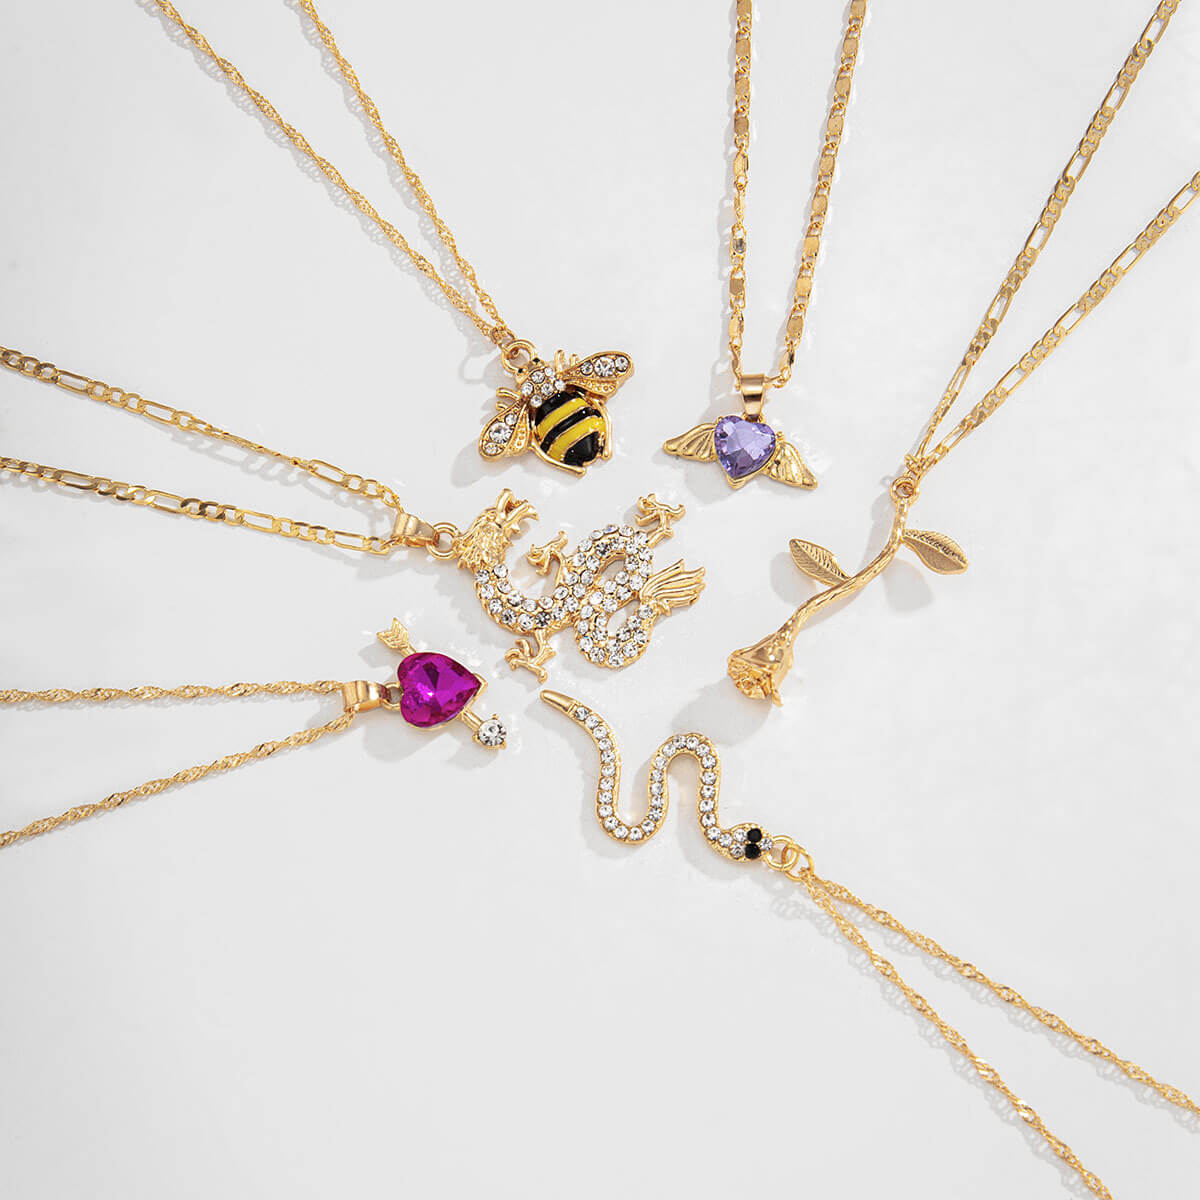 Lovely Retro 6-piece Gold Necklace